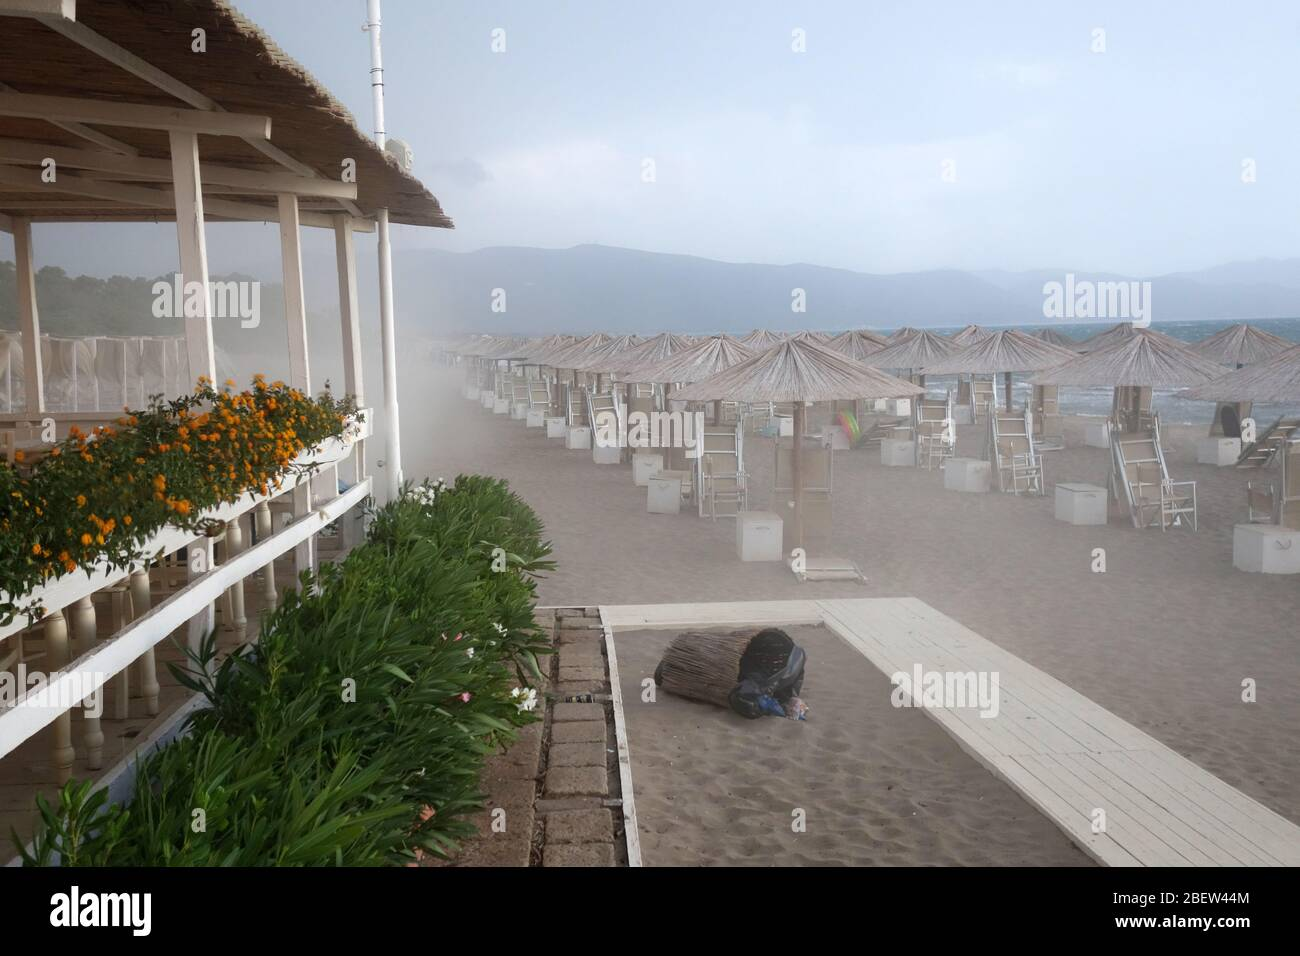 STRANDBAR IM STURM Stock Photo